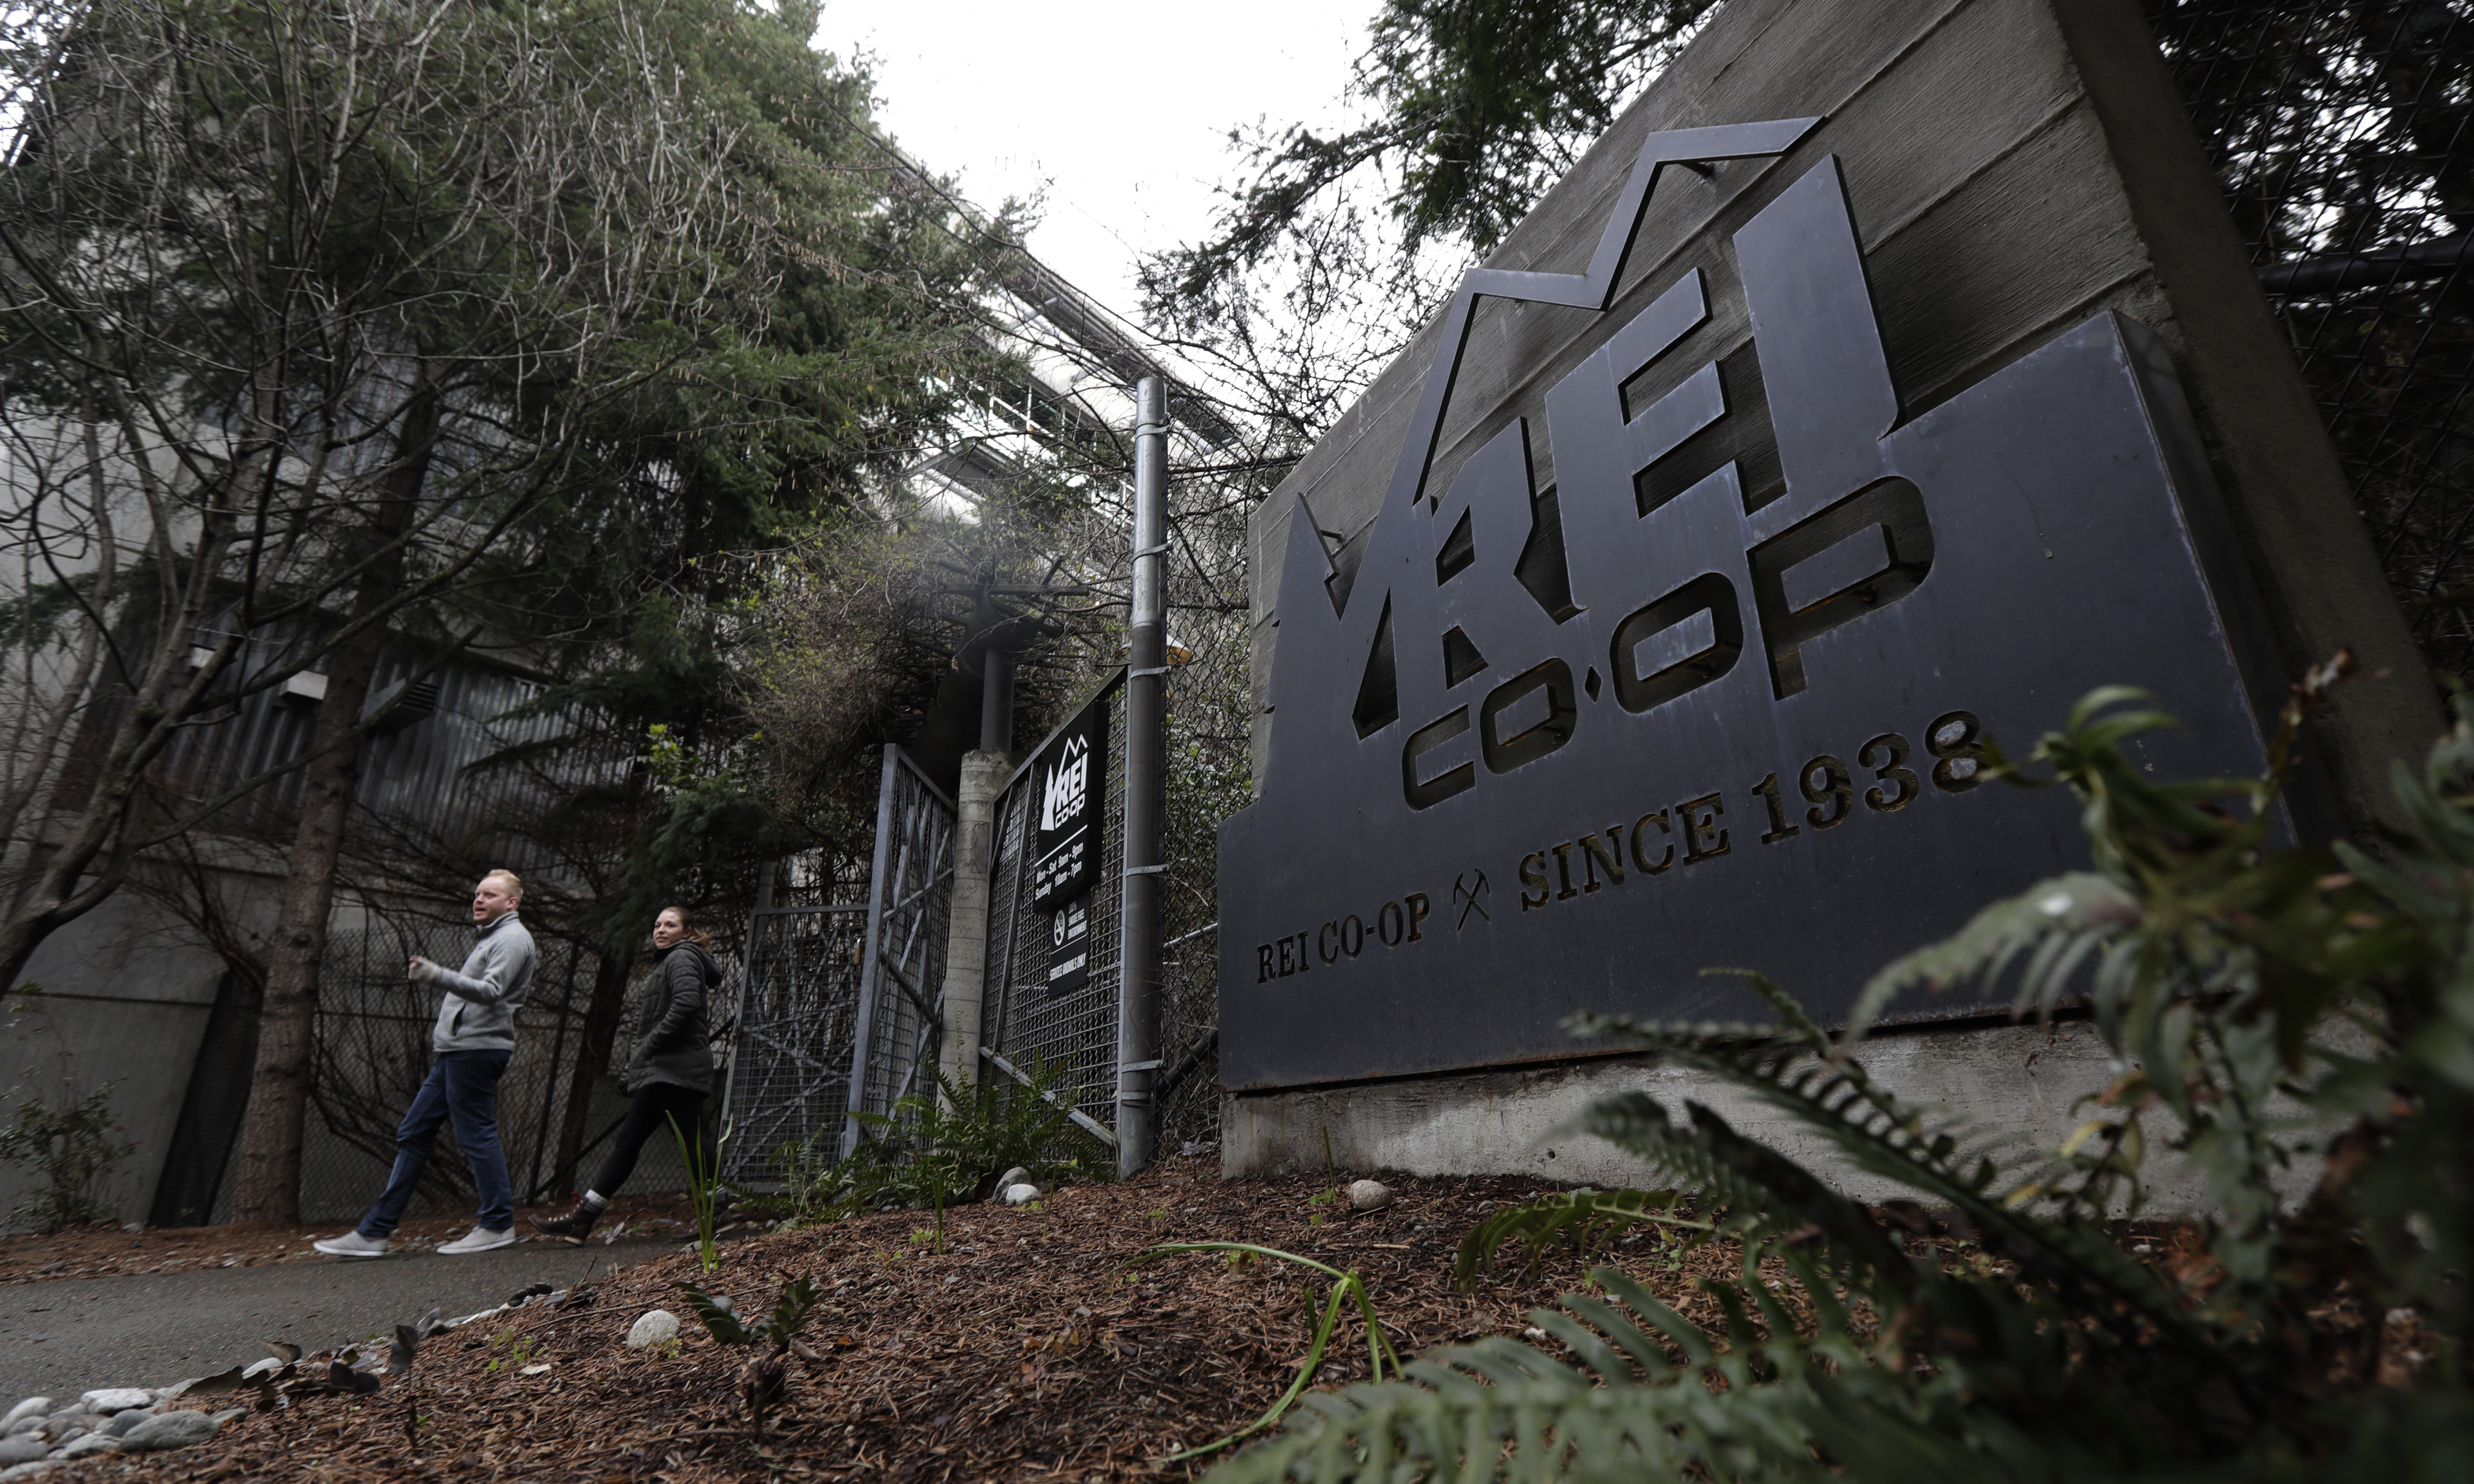 REI wants to open second Upstate New York store at old Sears site